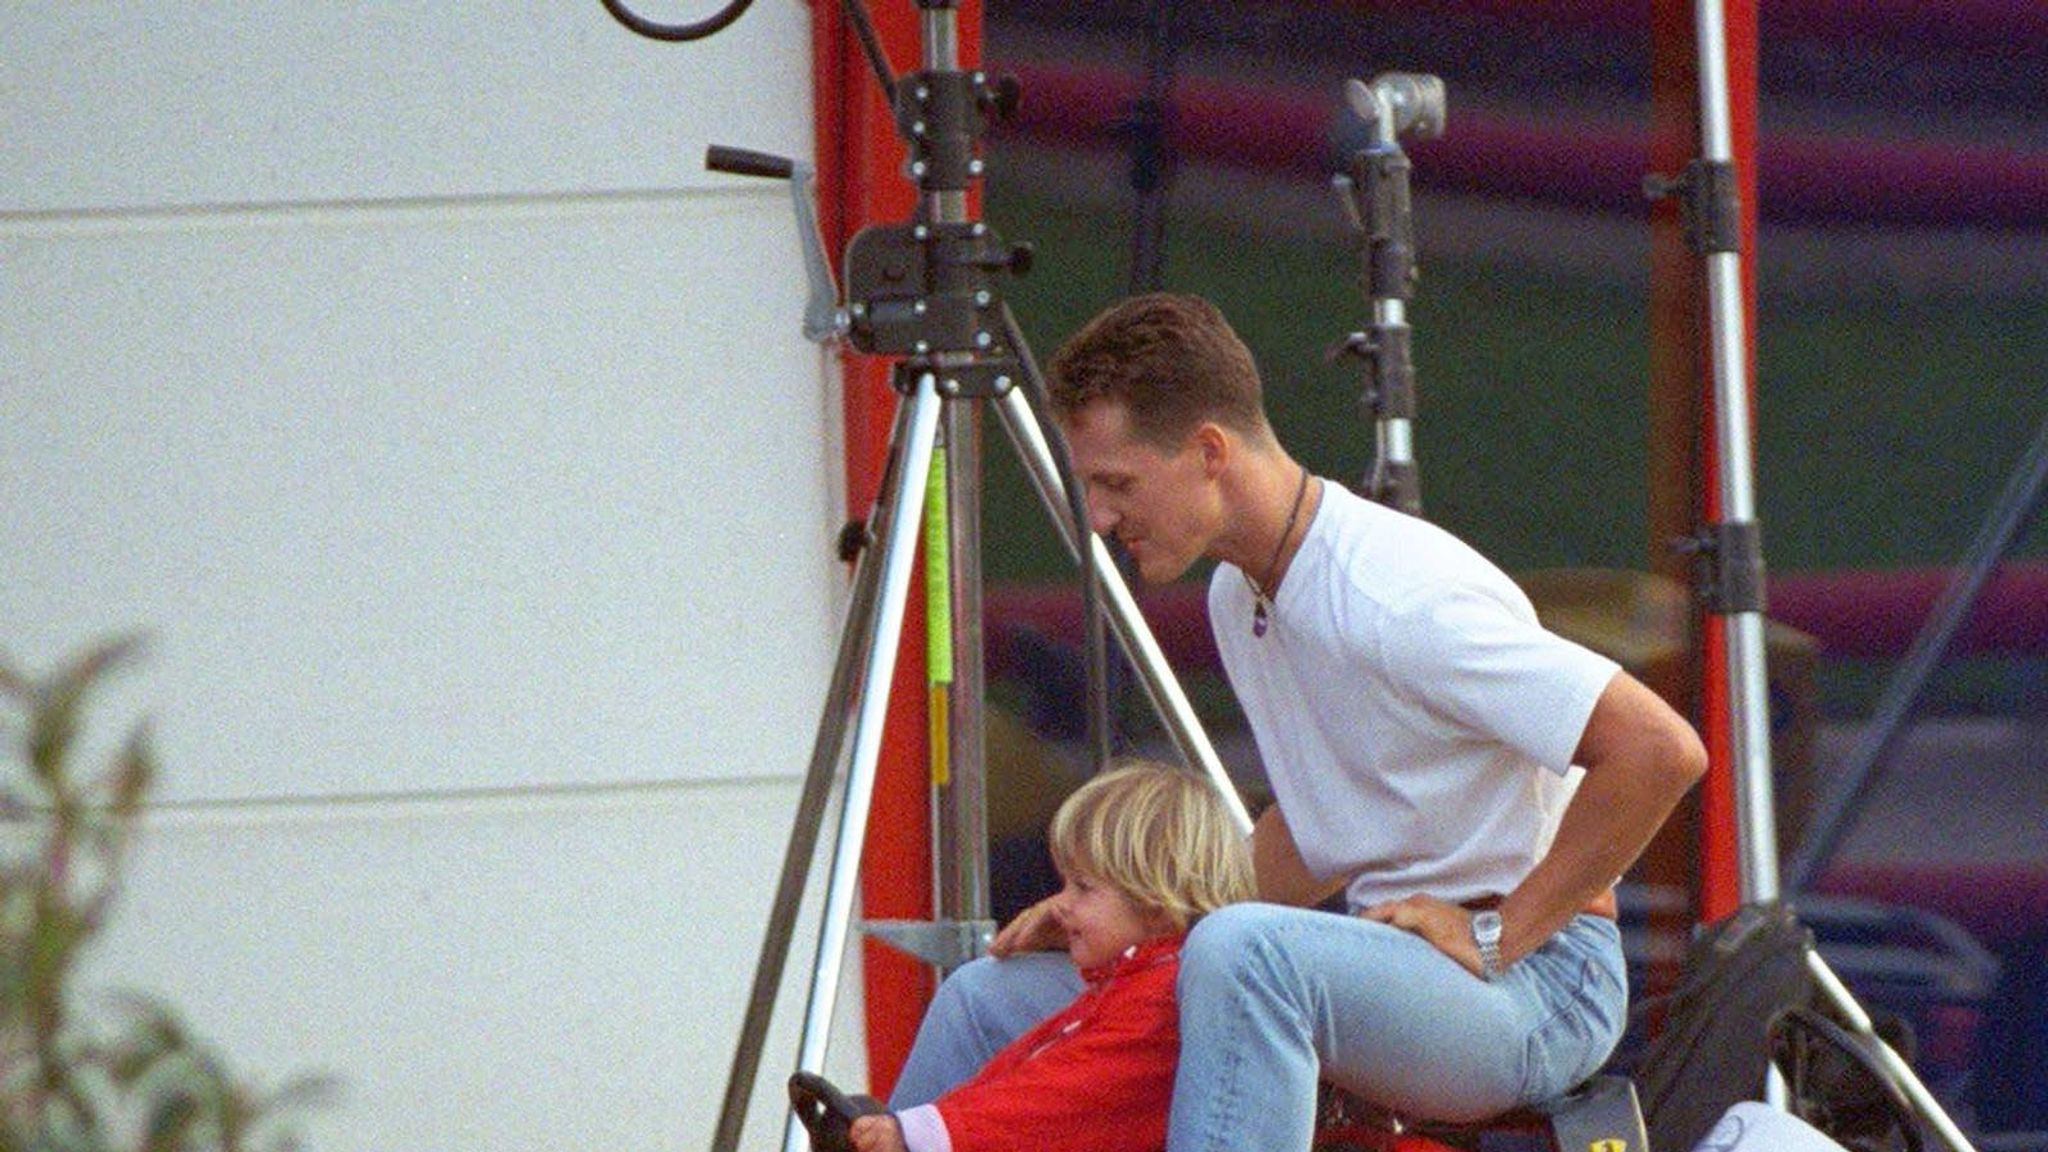 Michael Schumacher S Daughter Marks F1 Legend S 50th Birthday With Touching Post World News Sky News